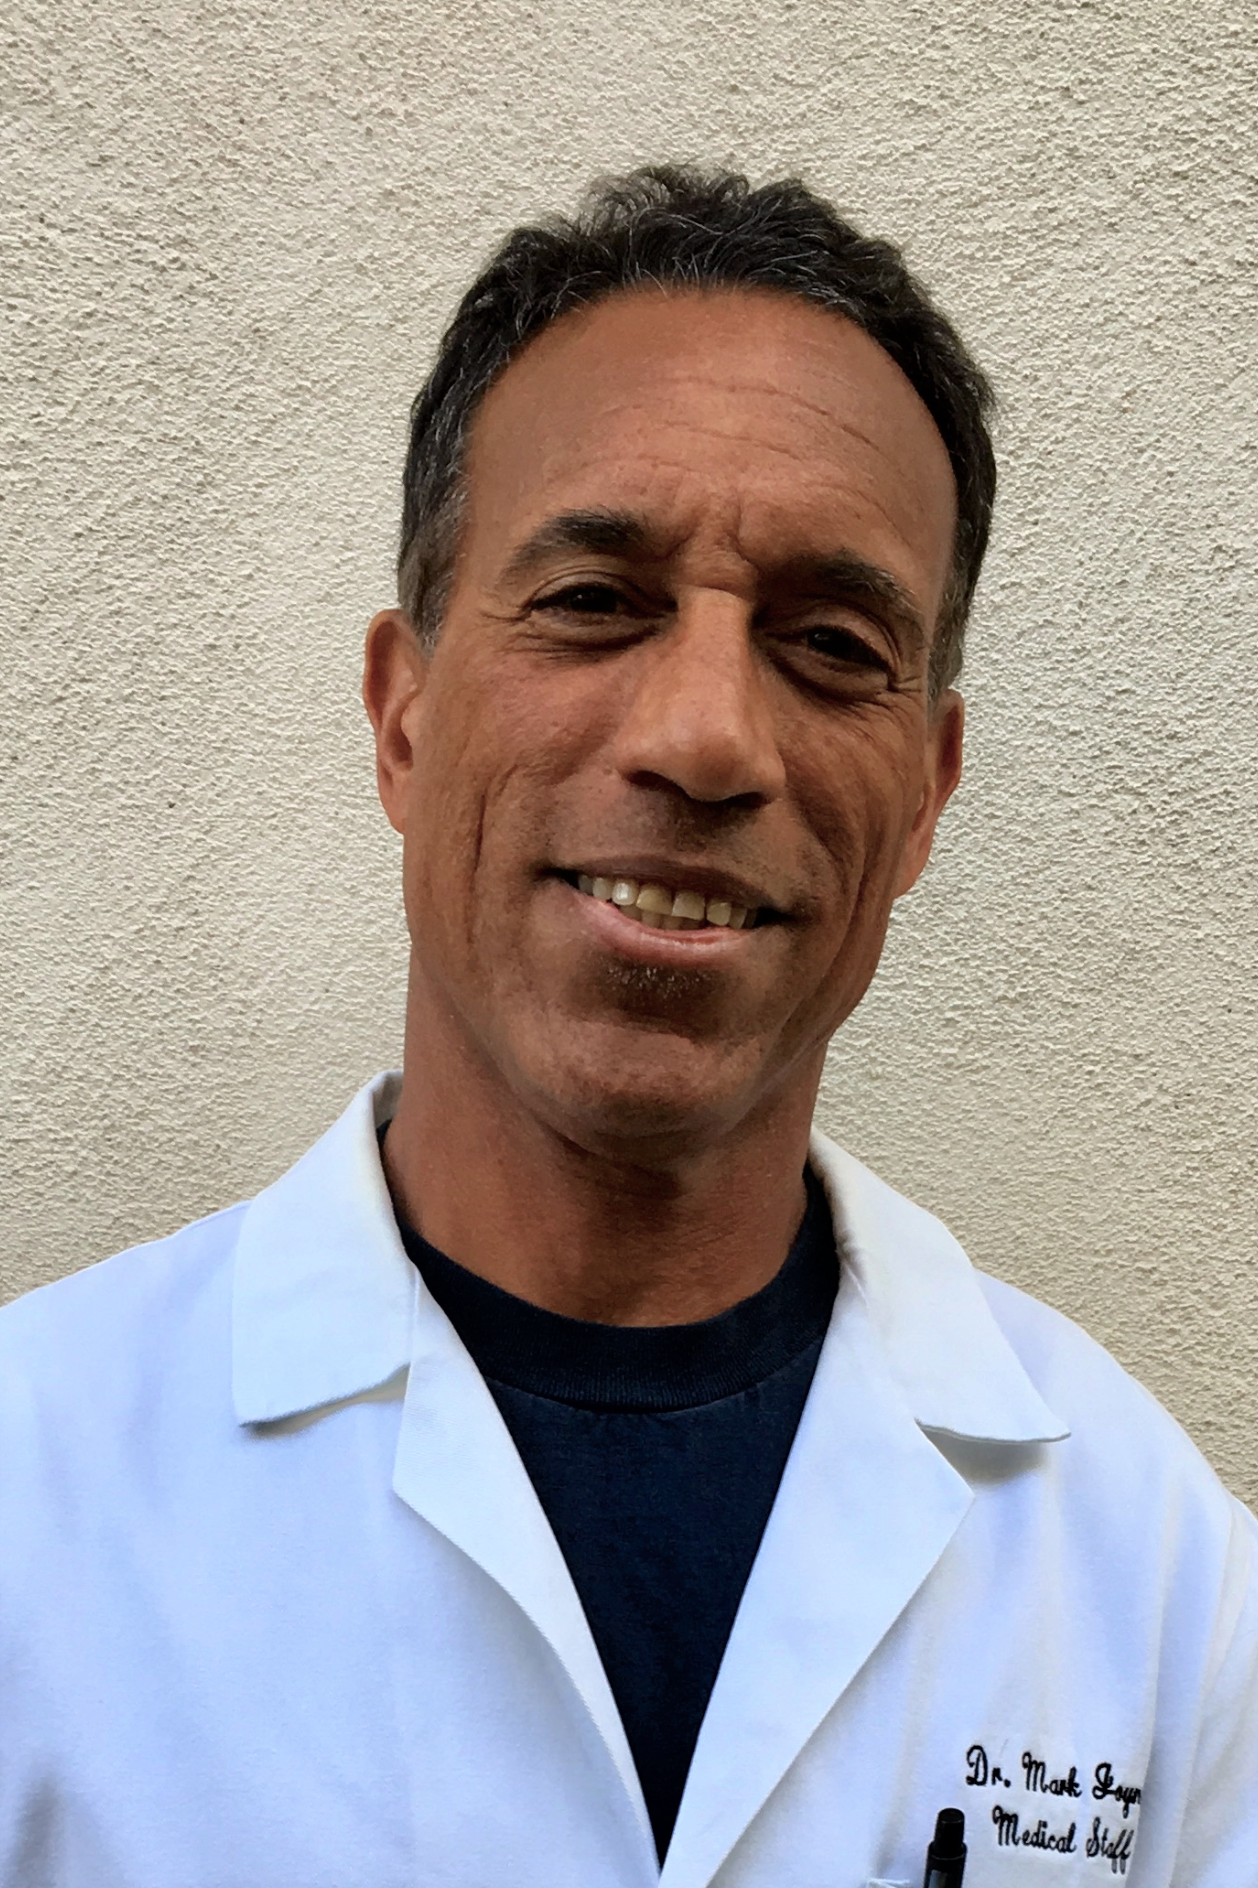 Mark Joyner, MD - Medical School: Michigan State UniversityResidency: Cook CountyYear Joined: 1992Special Interests: Surfing, Biking, Travel